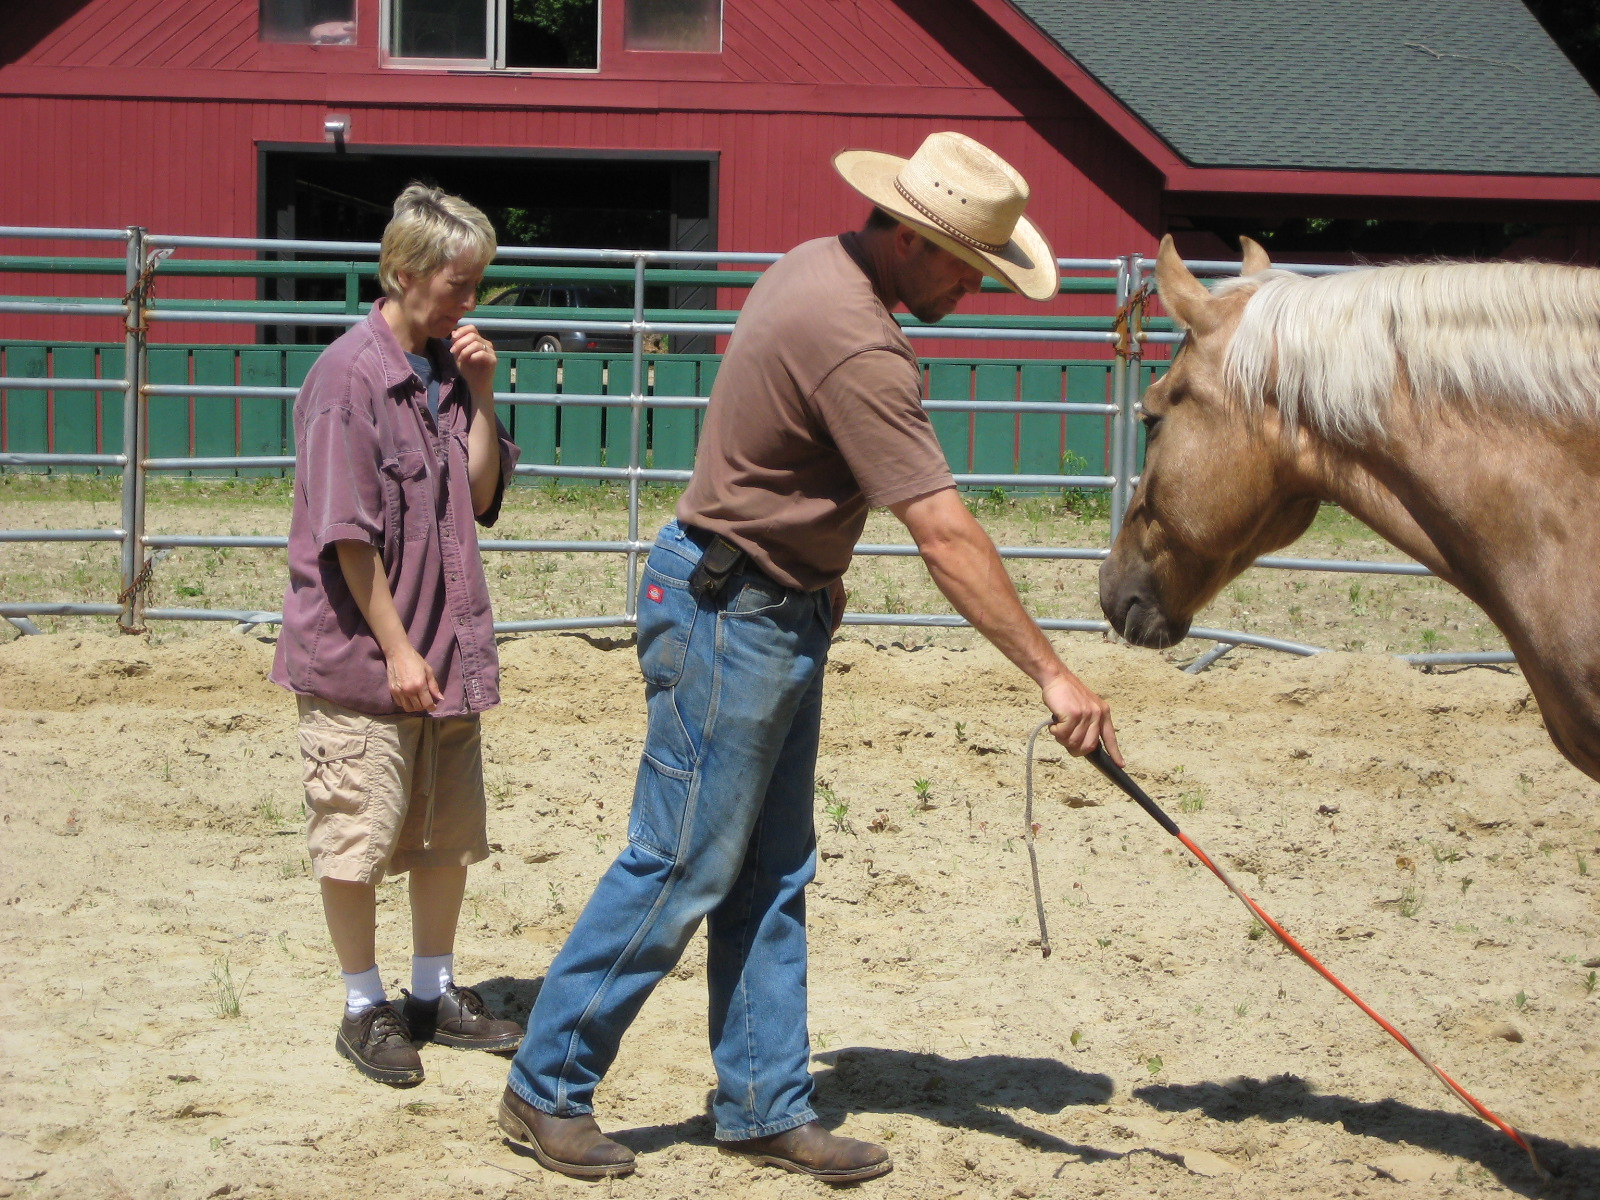 Clicking Joints in Horses – Horse Moms